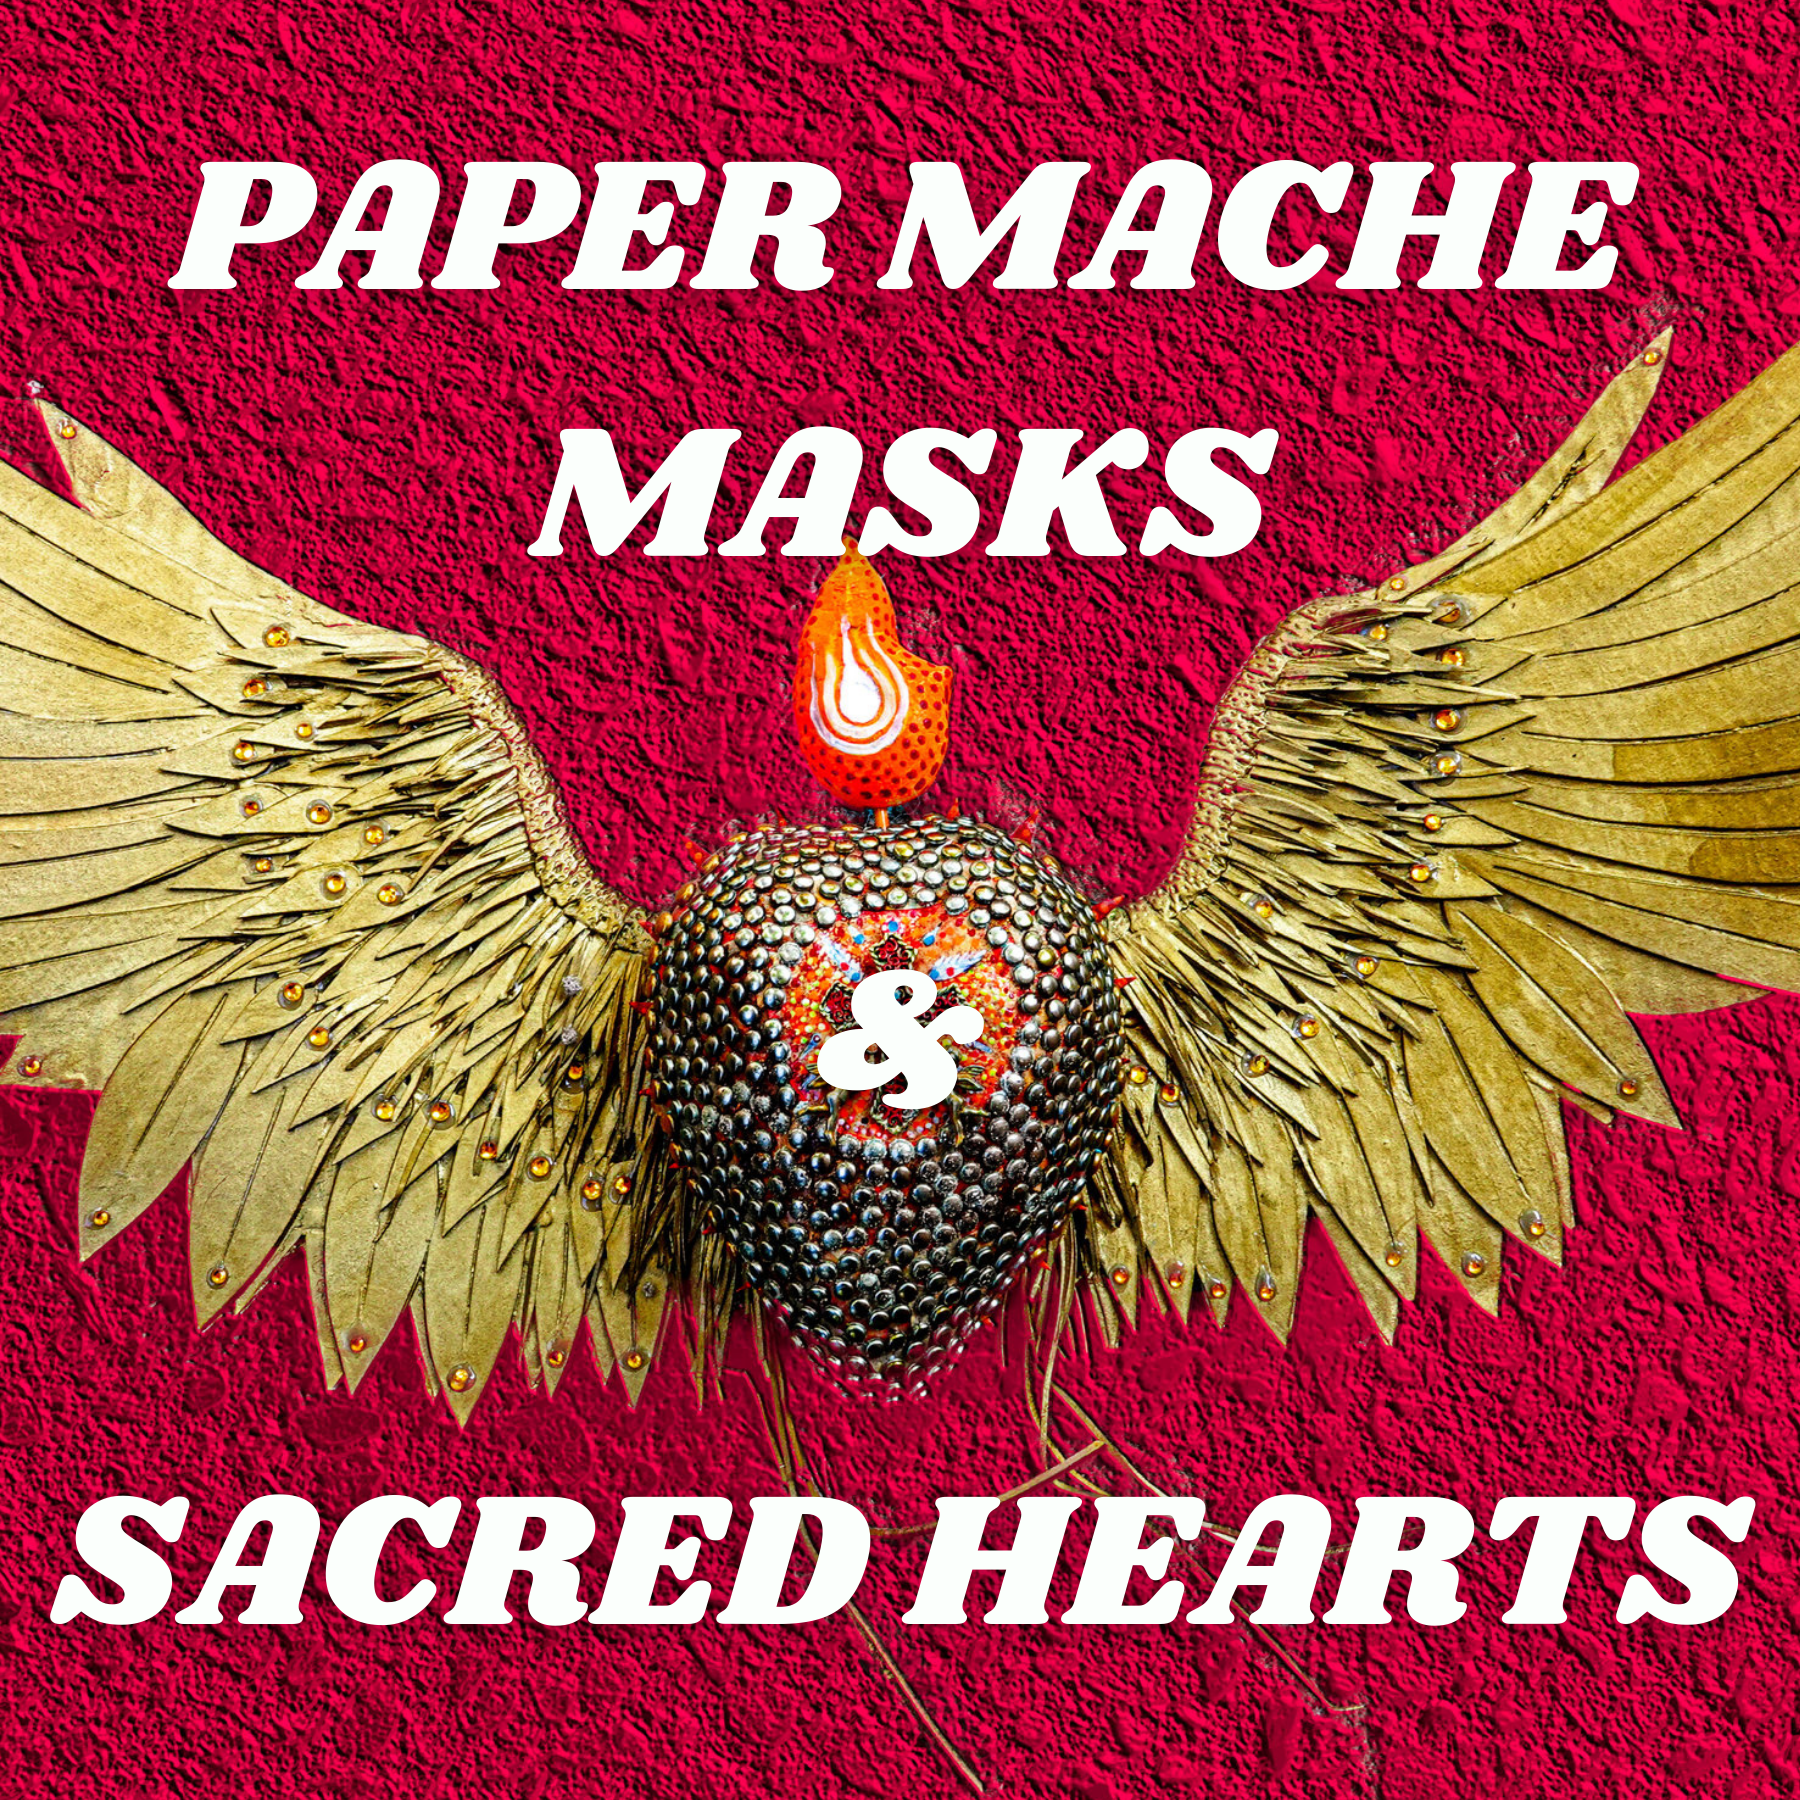 Paper Maché Masks and Sacred Hearts